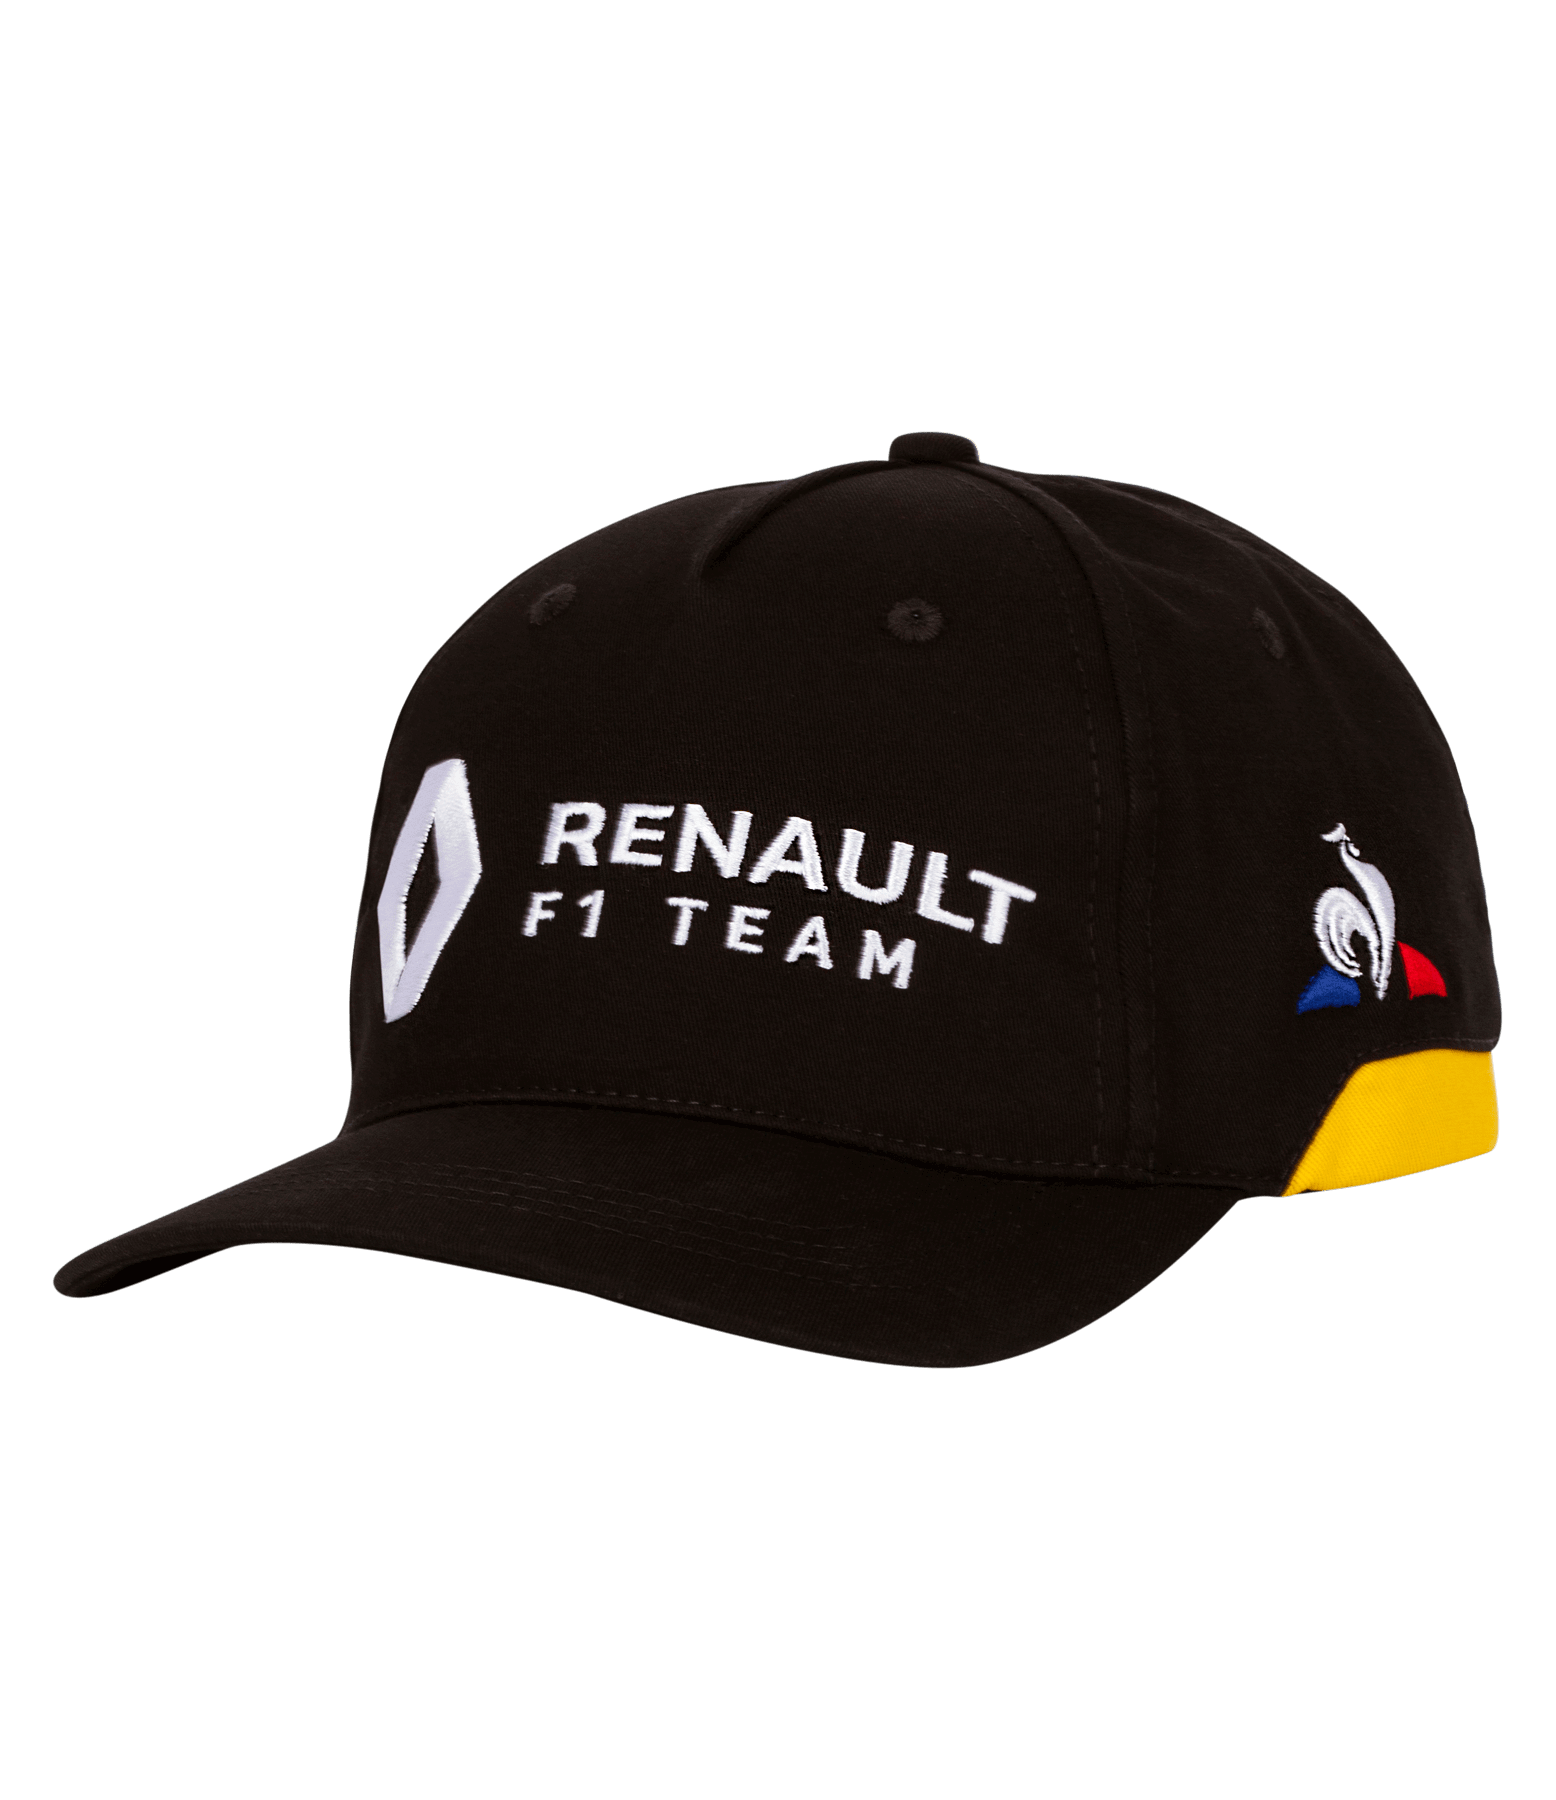 RENAULT F1® TEAM 2019 cap - black